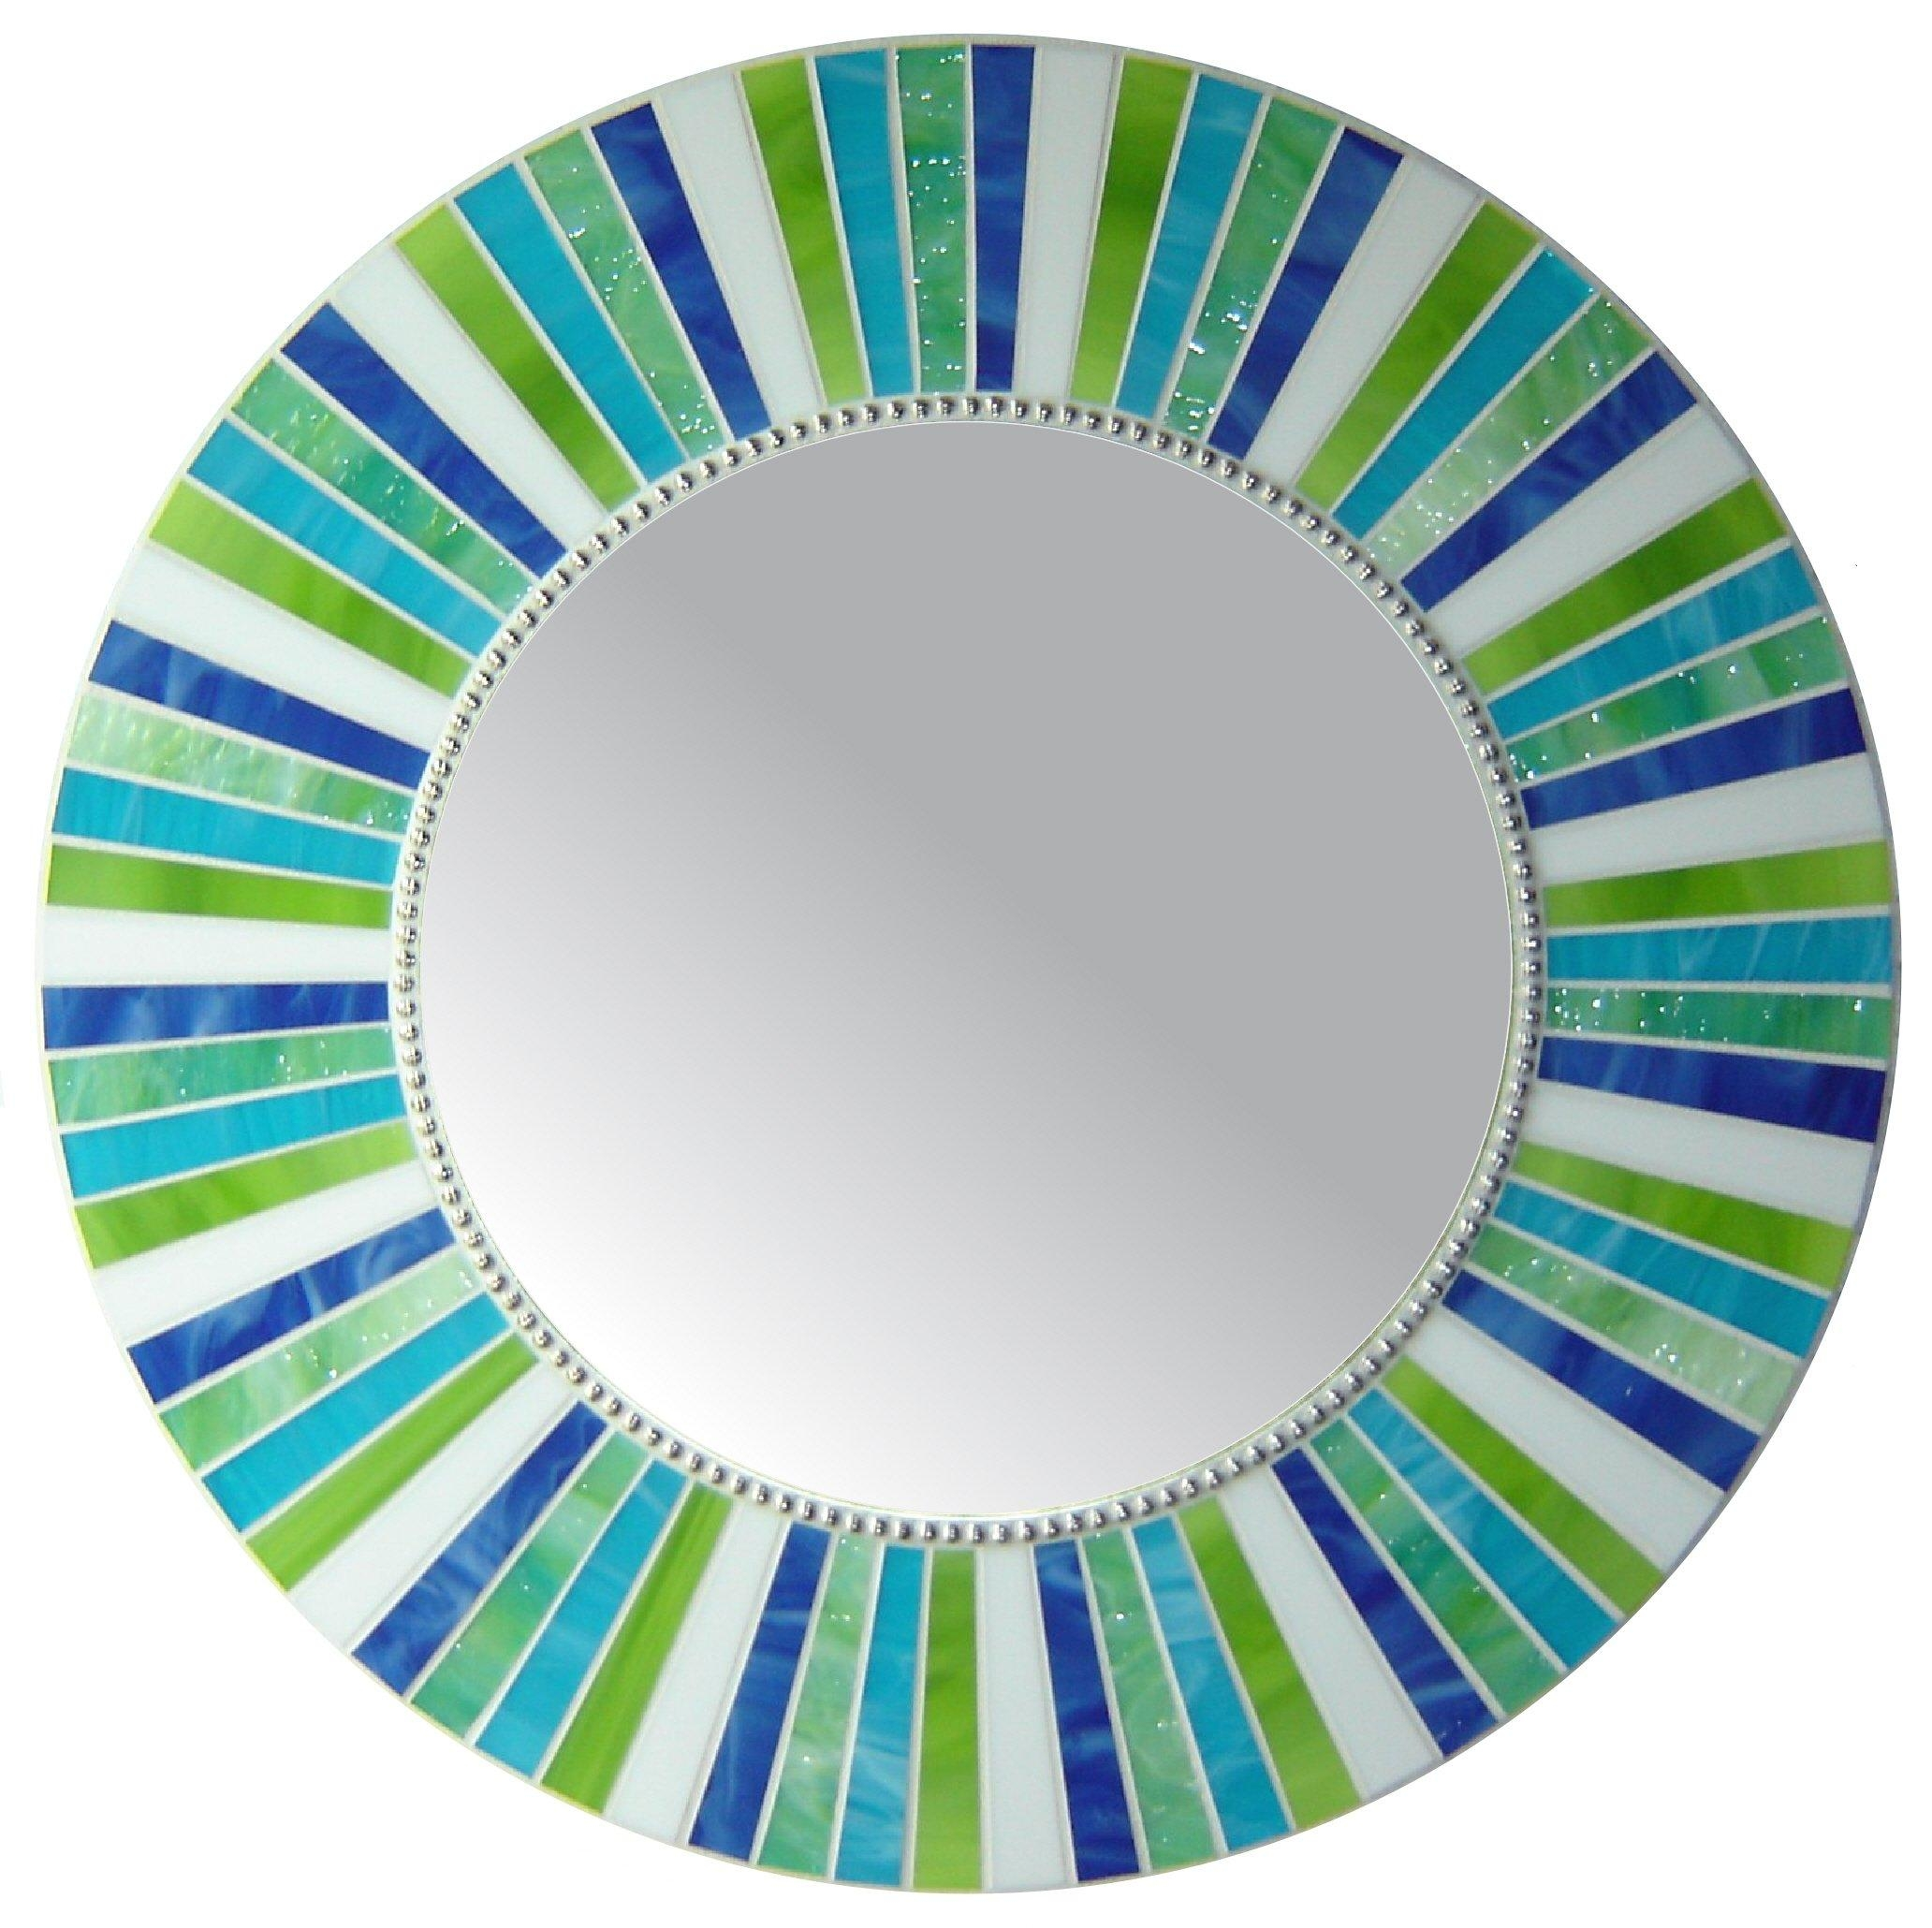 Signature Collection—Custom Mosaic Mirrors By Opus Mosaics Throughout Round Mosaic Mirrors (View 2 of 20)